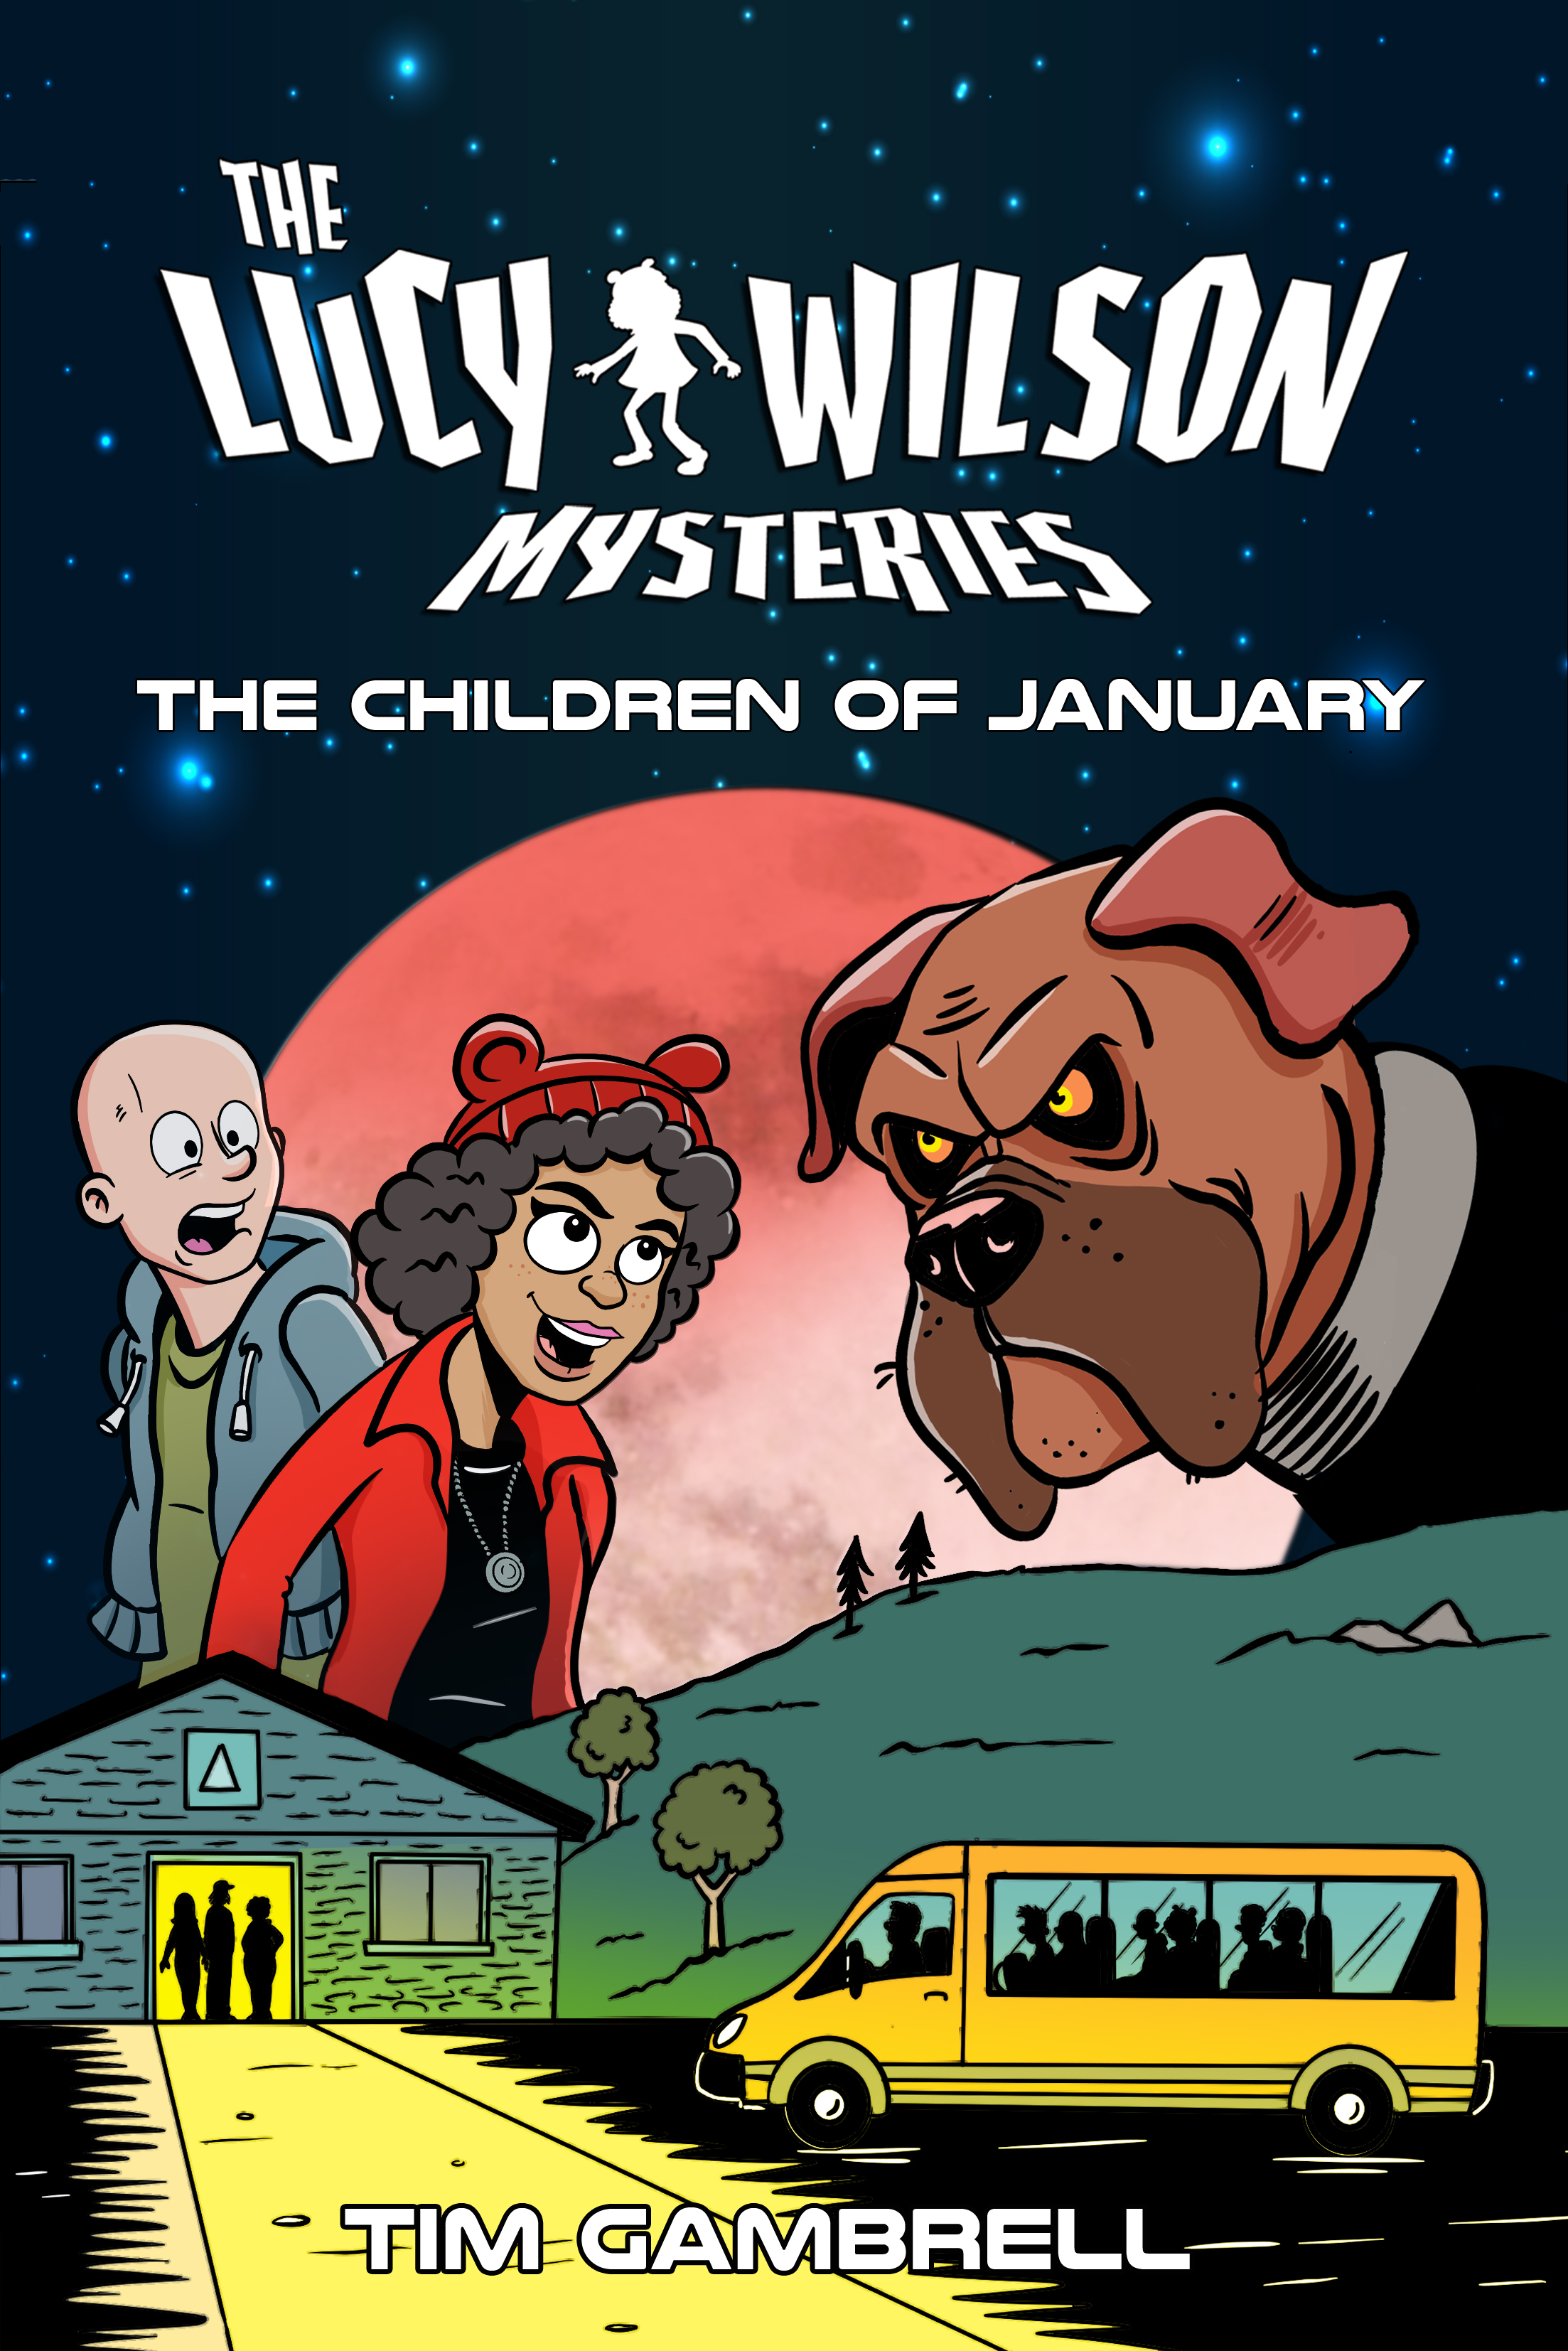 The Lucy Wilson Mysteries: Children of January